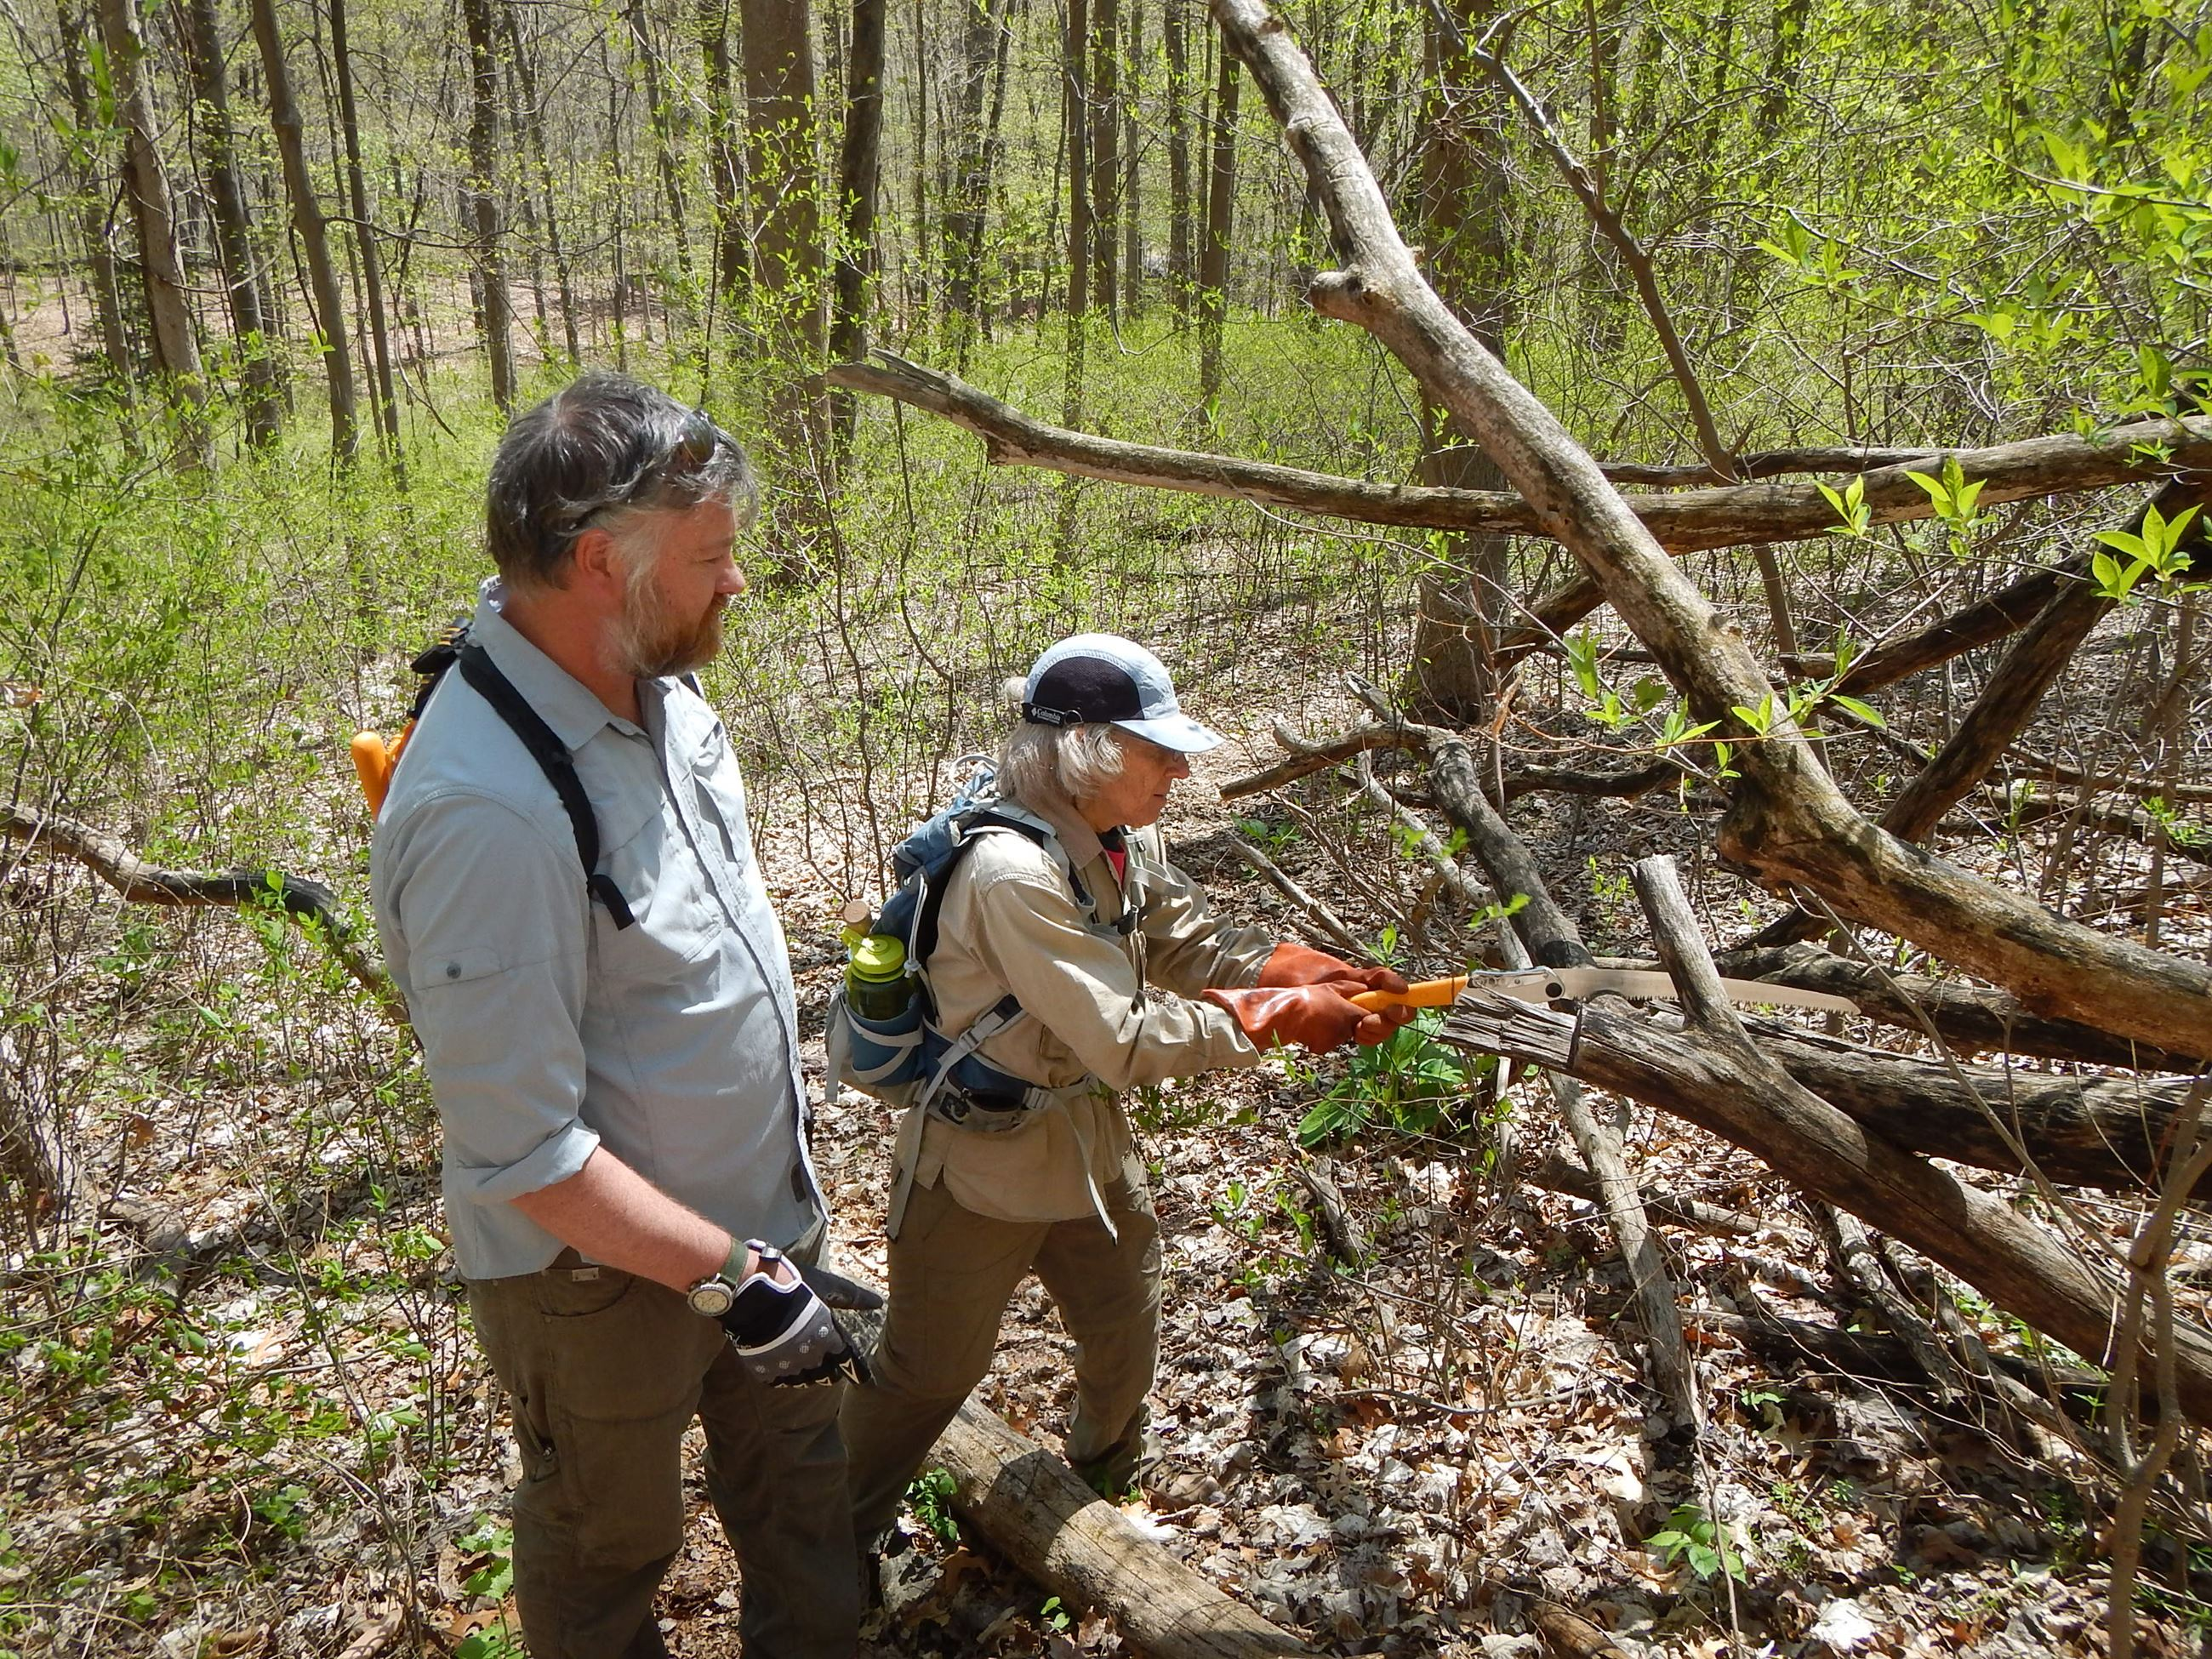 Trail maintenance workshop (sawing)